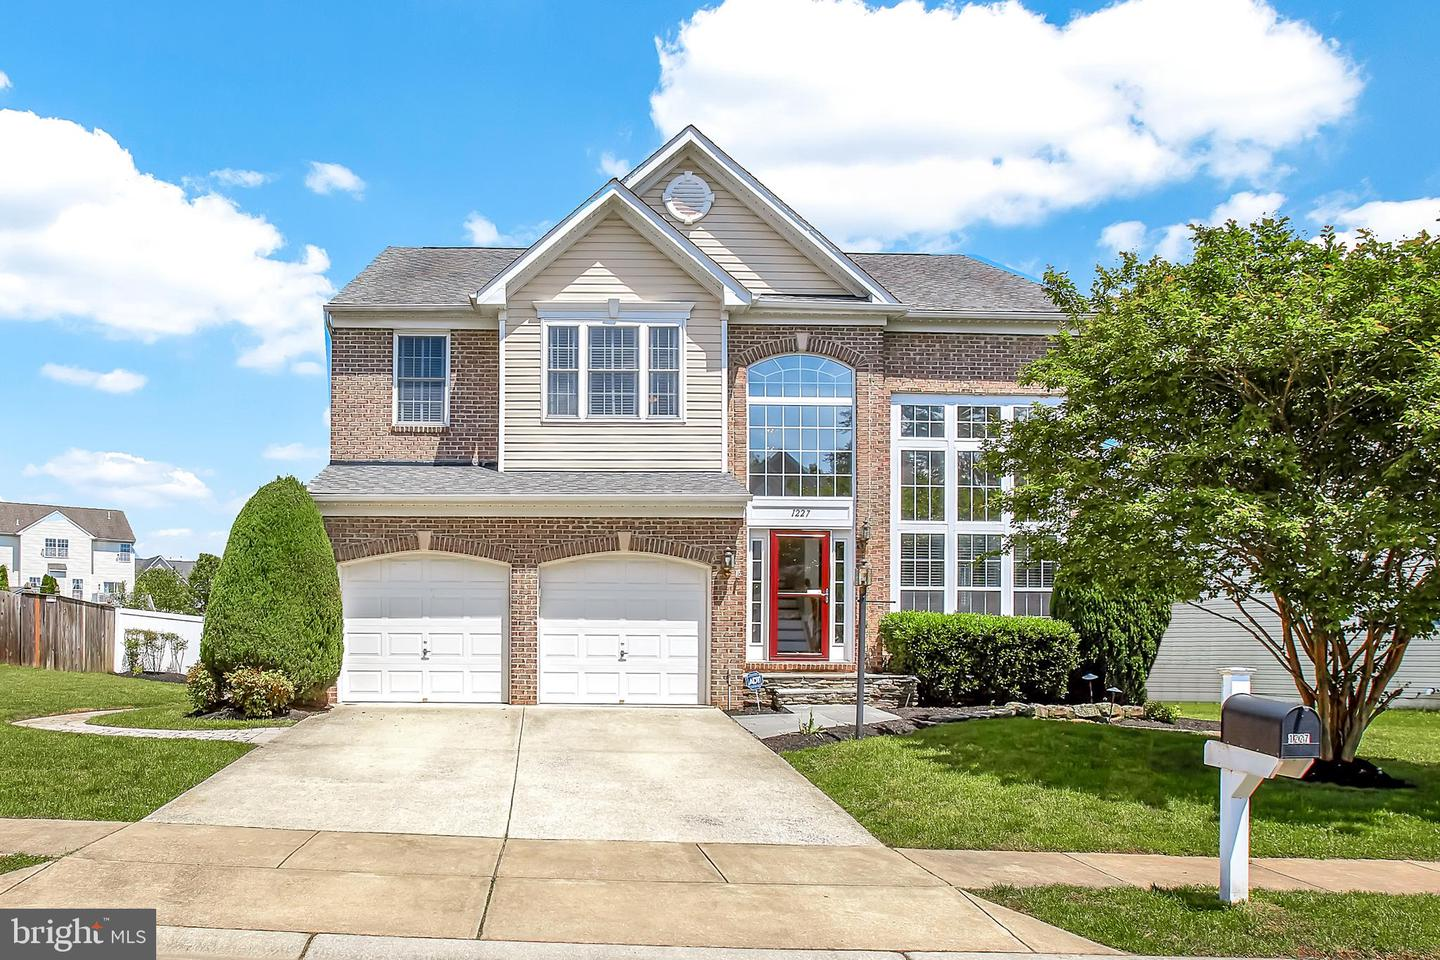 1227 COLONIAL PARK DRIVE, SEVERN, Maryland